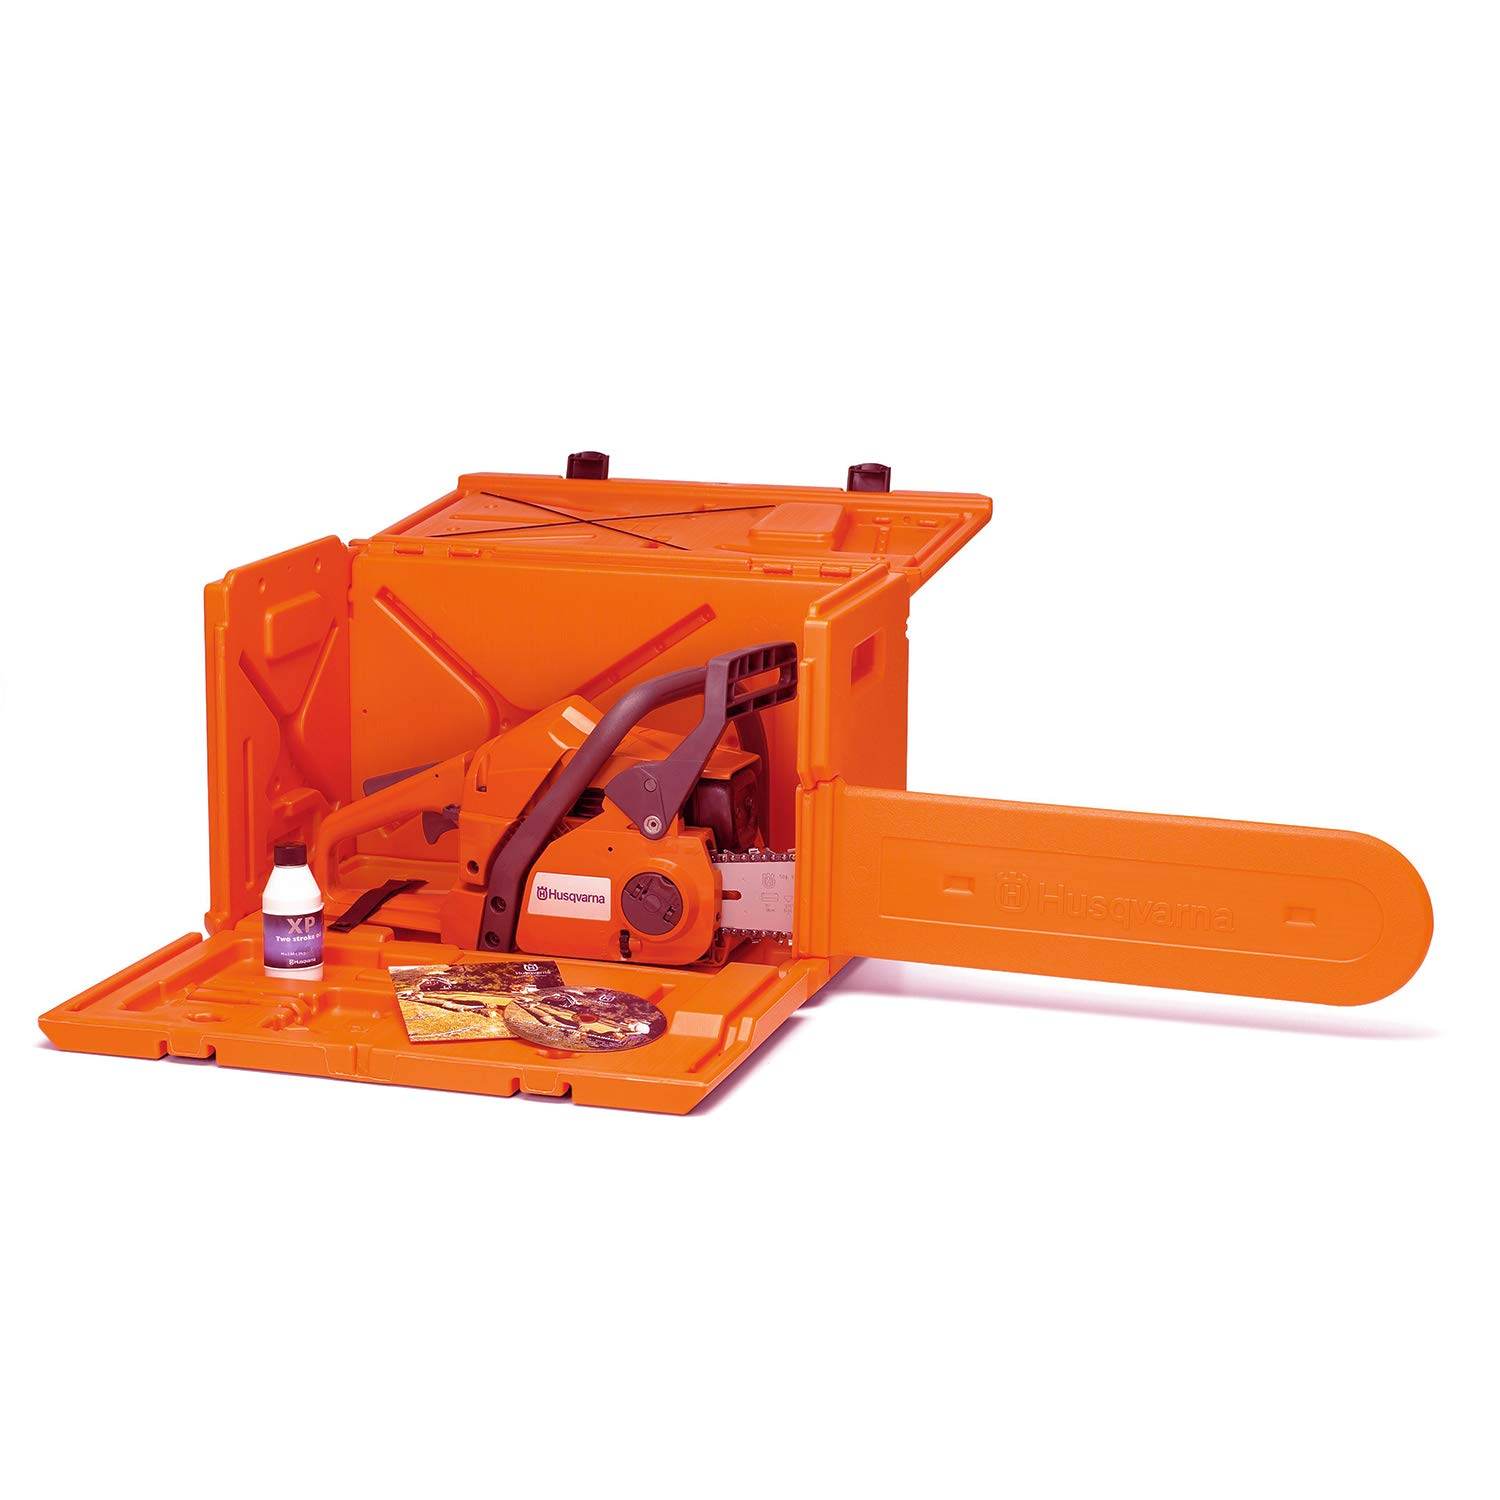 Husqvarna 100000107 Powerbox Chainsaw Carrying Case for 455 Rancher, 460, 372XP and 575XP by Husqvarna